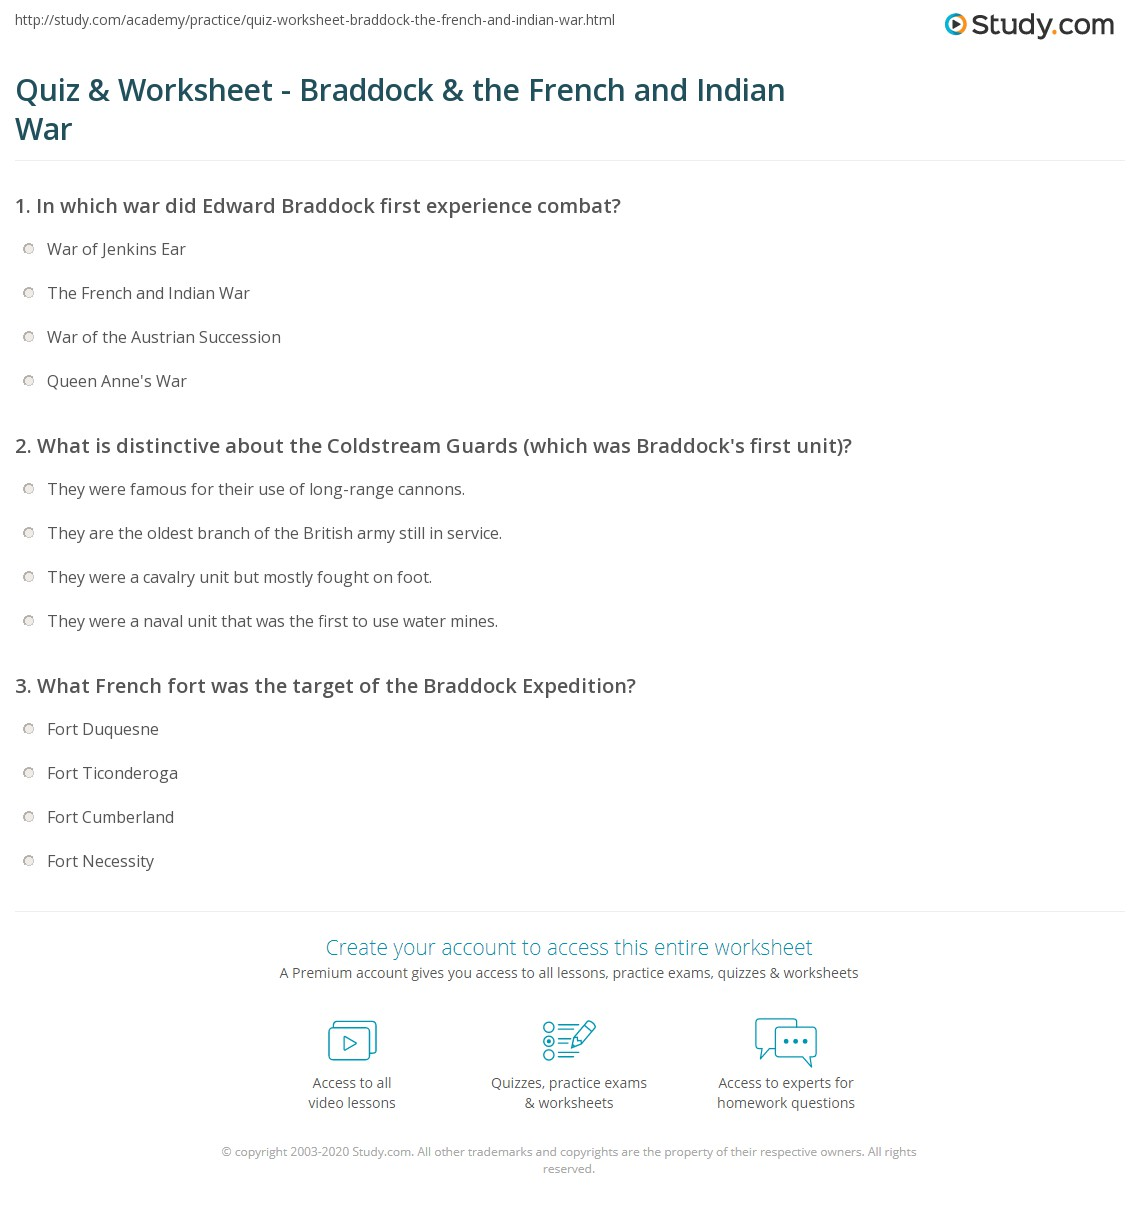 French and Indian Wars furthermore Middle Reading  prehension Worksheet Reading Worksheets likewise  besides  moreover  as well French and Indian War Worksheet with 37 Best French Indian also Consequences of the French and Indian War Lesson Plan for 8th   12th additionally French and Indian War Map further  in addition French and Indian War Worksheets   Siteraven in addition √ French And Indian War Worksheets The best worksheets image likewise Quiz   Worksheet   ddock   the French and Indian War   Study moreover  as well French And Indian War Worksheet Davezan  French And Indian War moreover  as well French   Indian War Facts   Worksheets For Kids   Seven Years War. on french and indian war worksheet